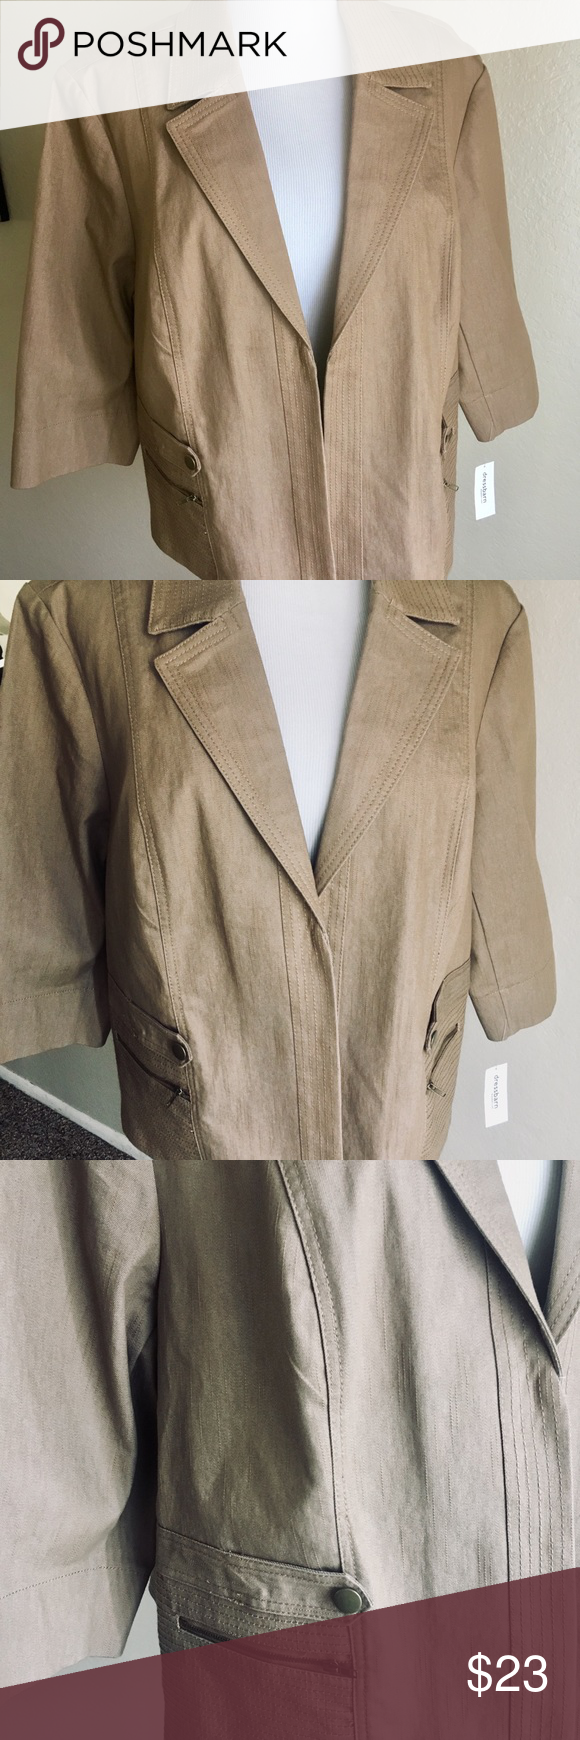 e33f4501c60c Woman's jacket Dress Barn 3X Beige Women's jacket from Dress Barn. beige,  cotton polyester